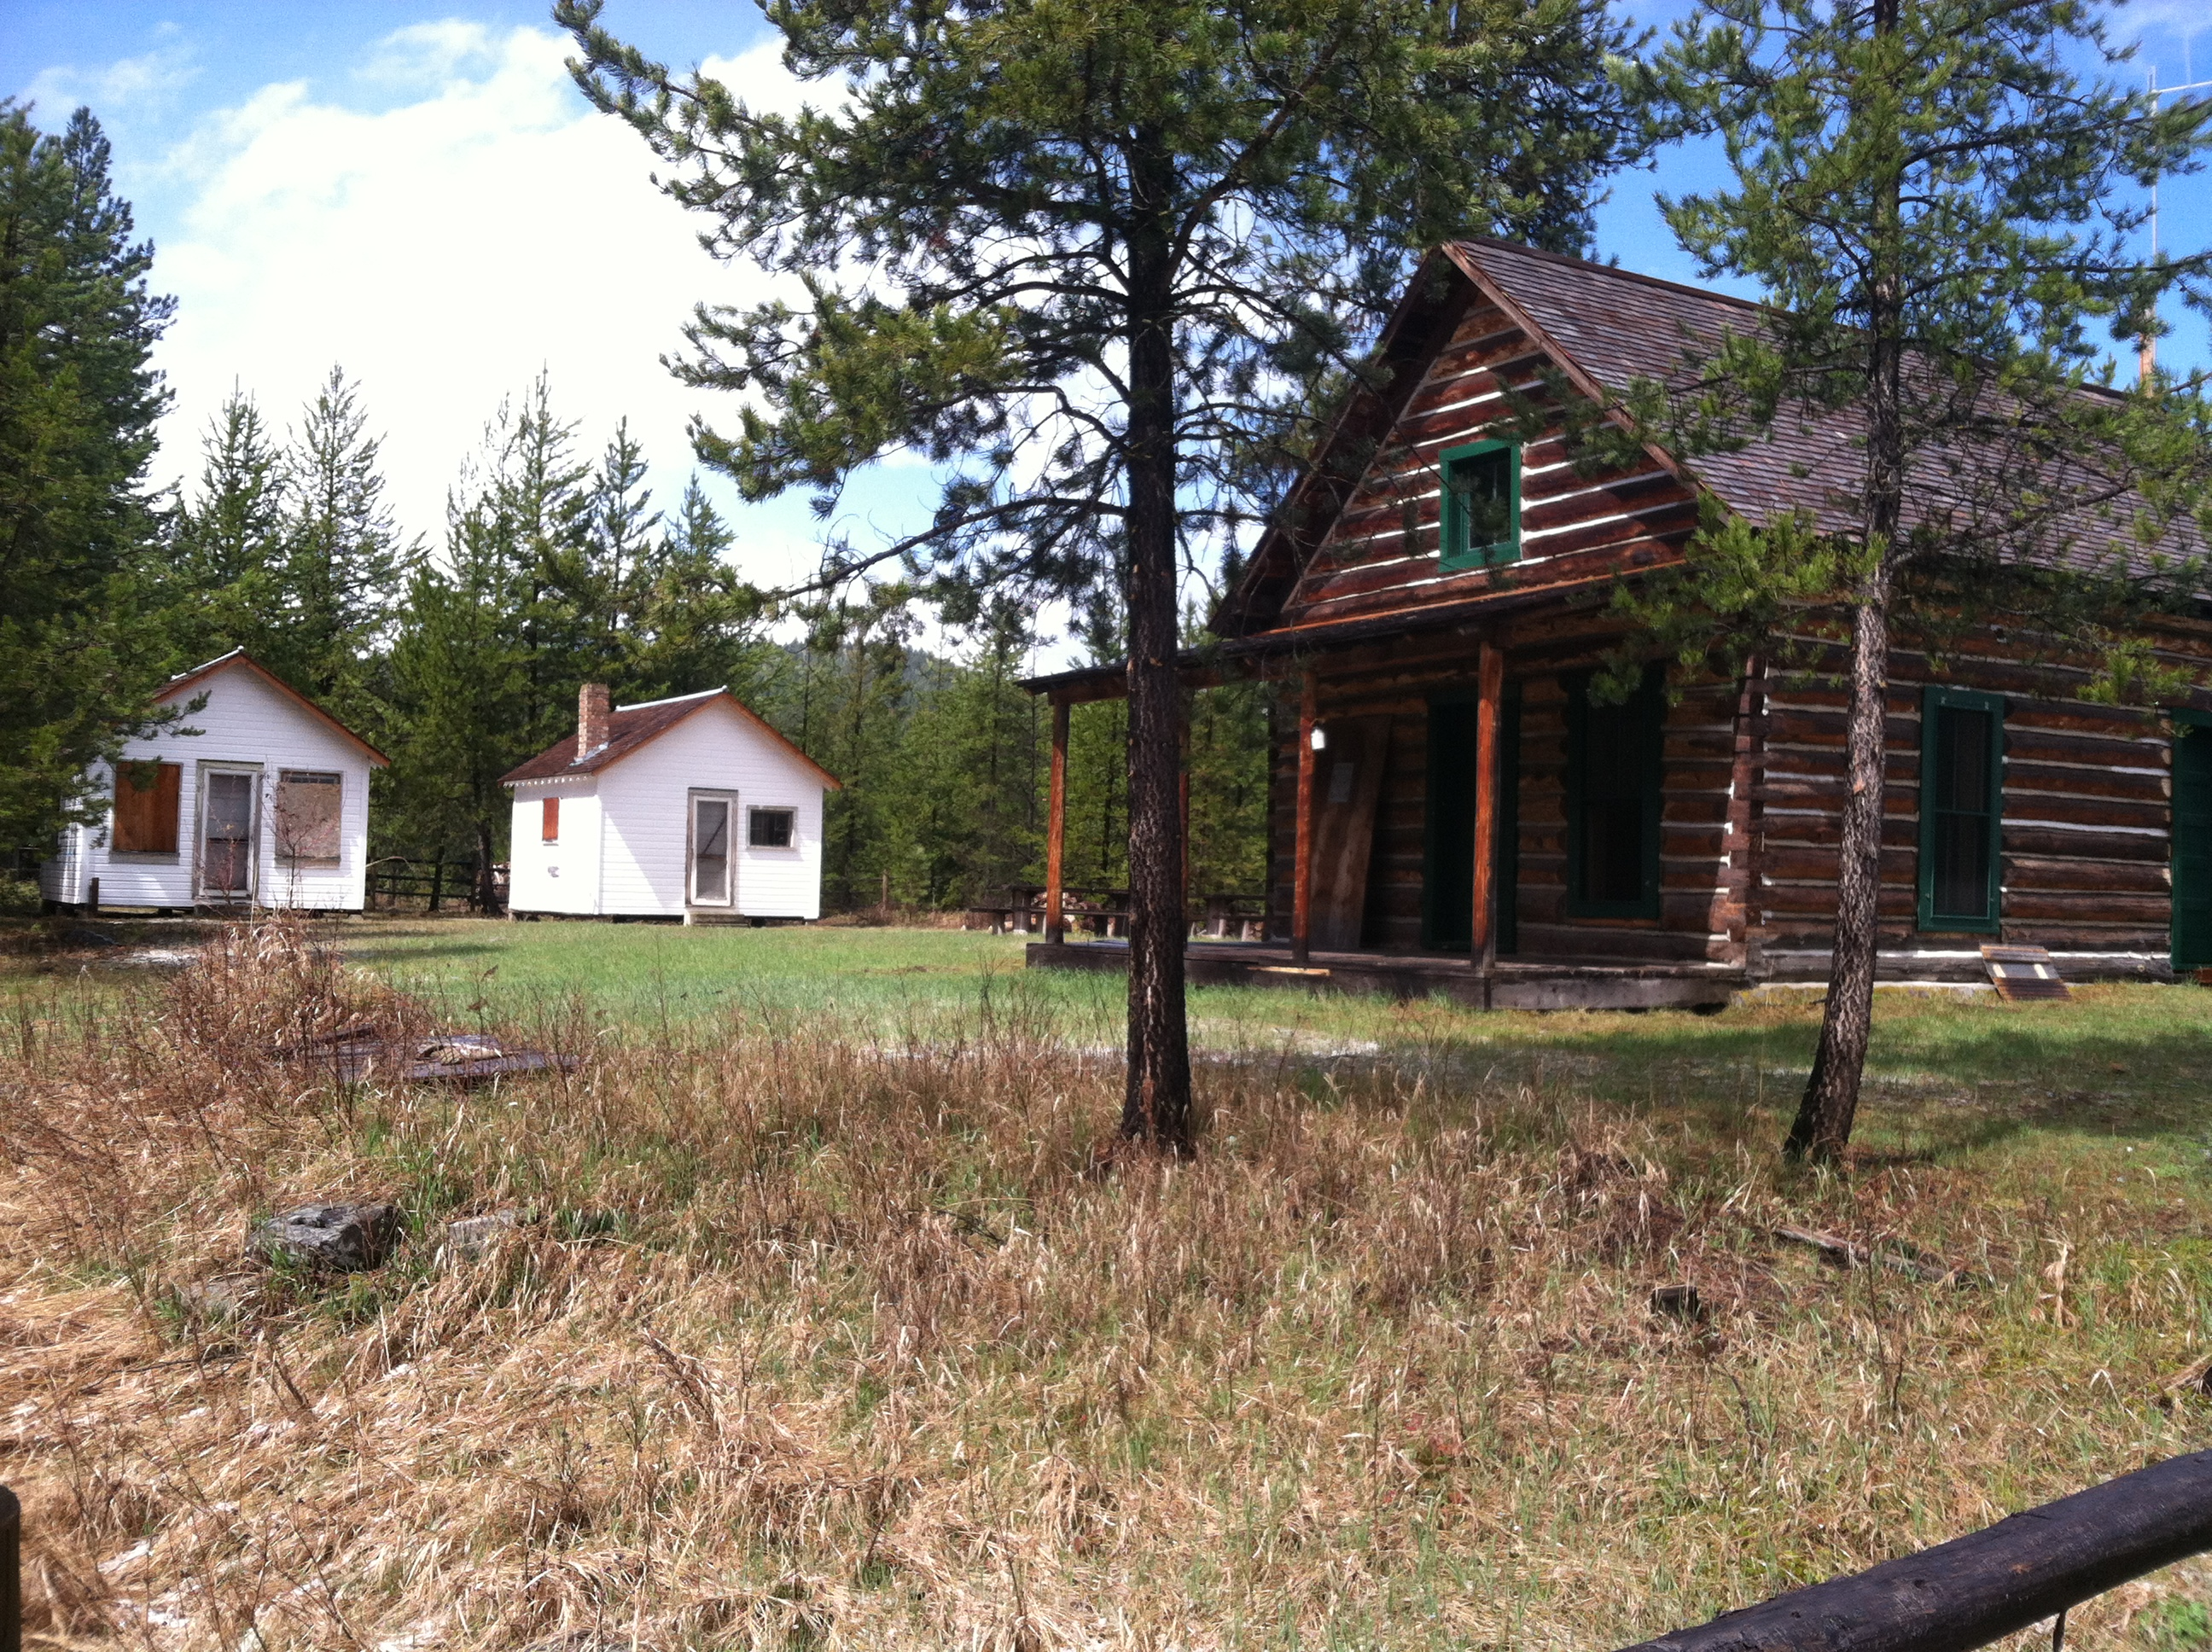 rentals outdoor your img coming tmc river rock mountain soon cabin cabins montana awaits adventure